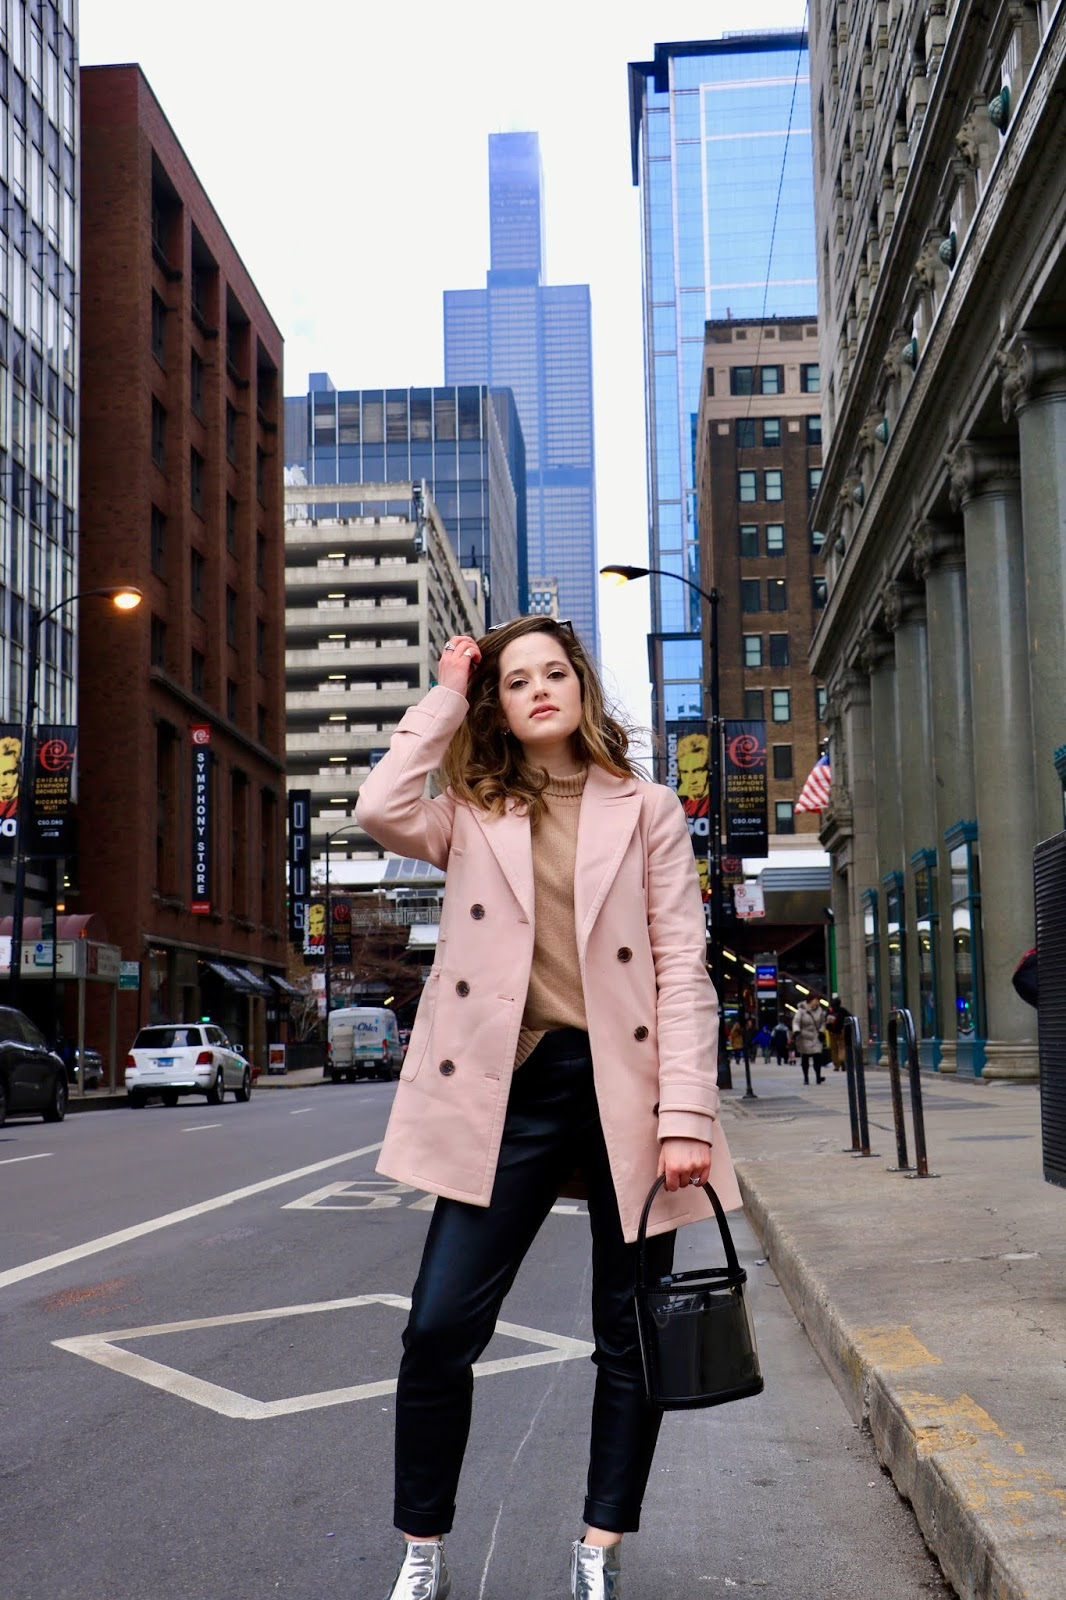 Nyc fashion blogger Kathleen Harper wearing a blush pink coat.